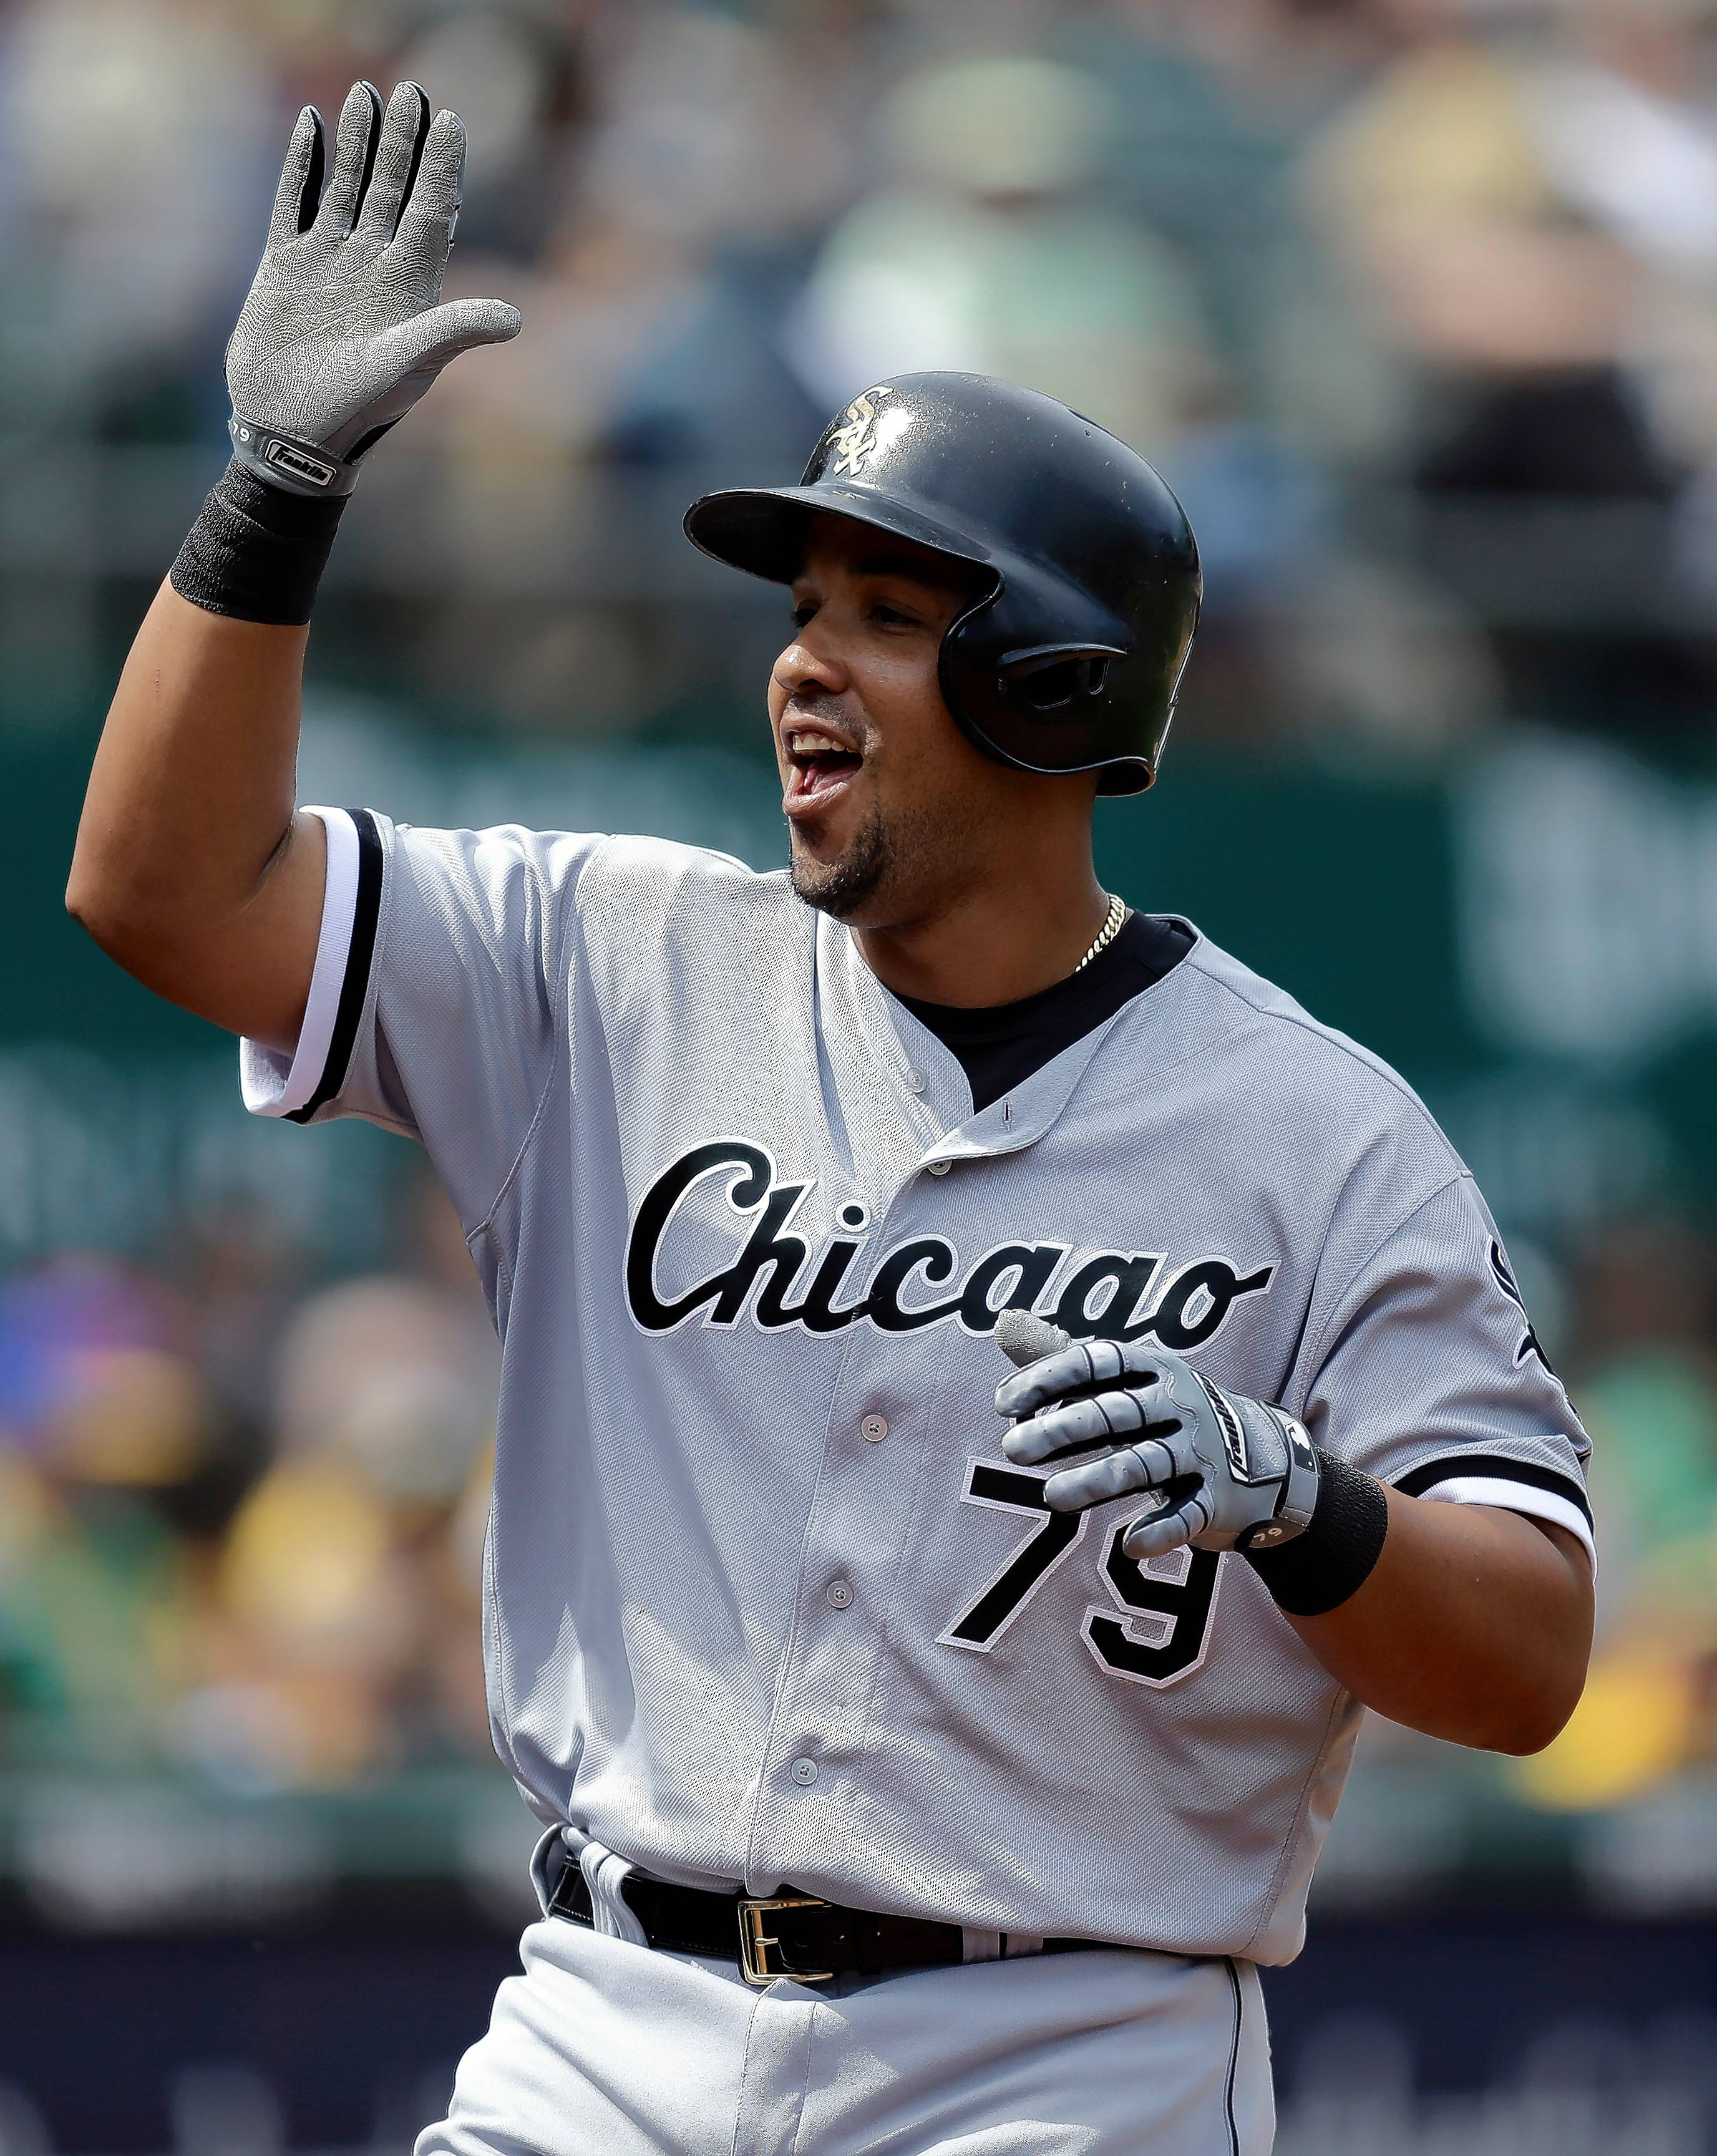 Report: Sox slugger Abreu paid agents $5.8 million to exit Cuba